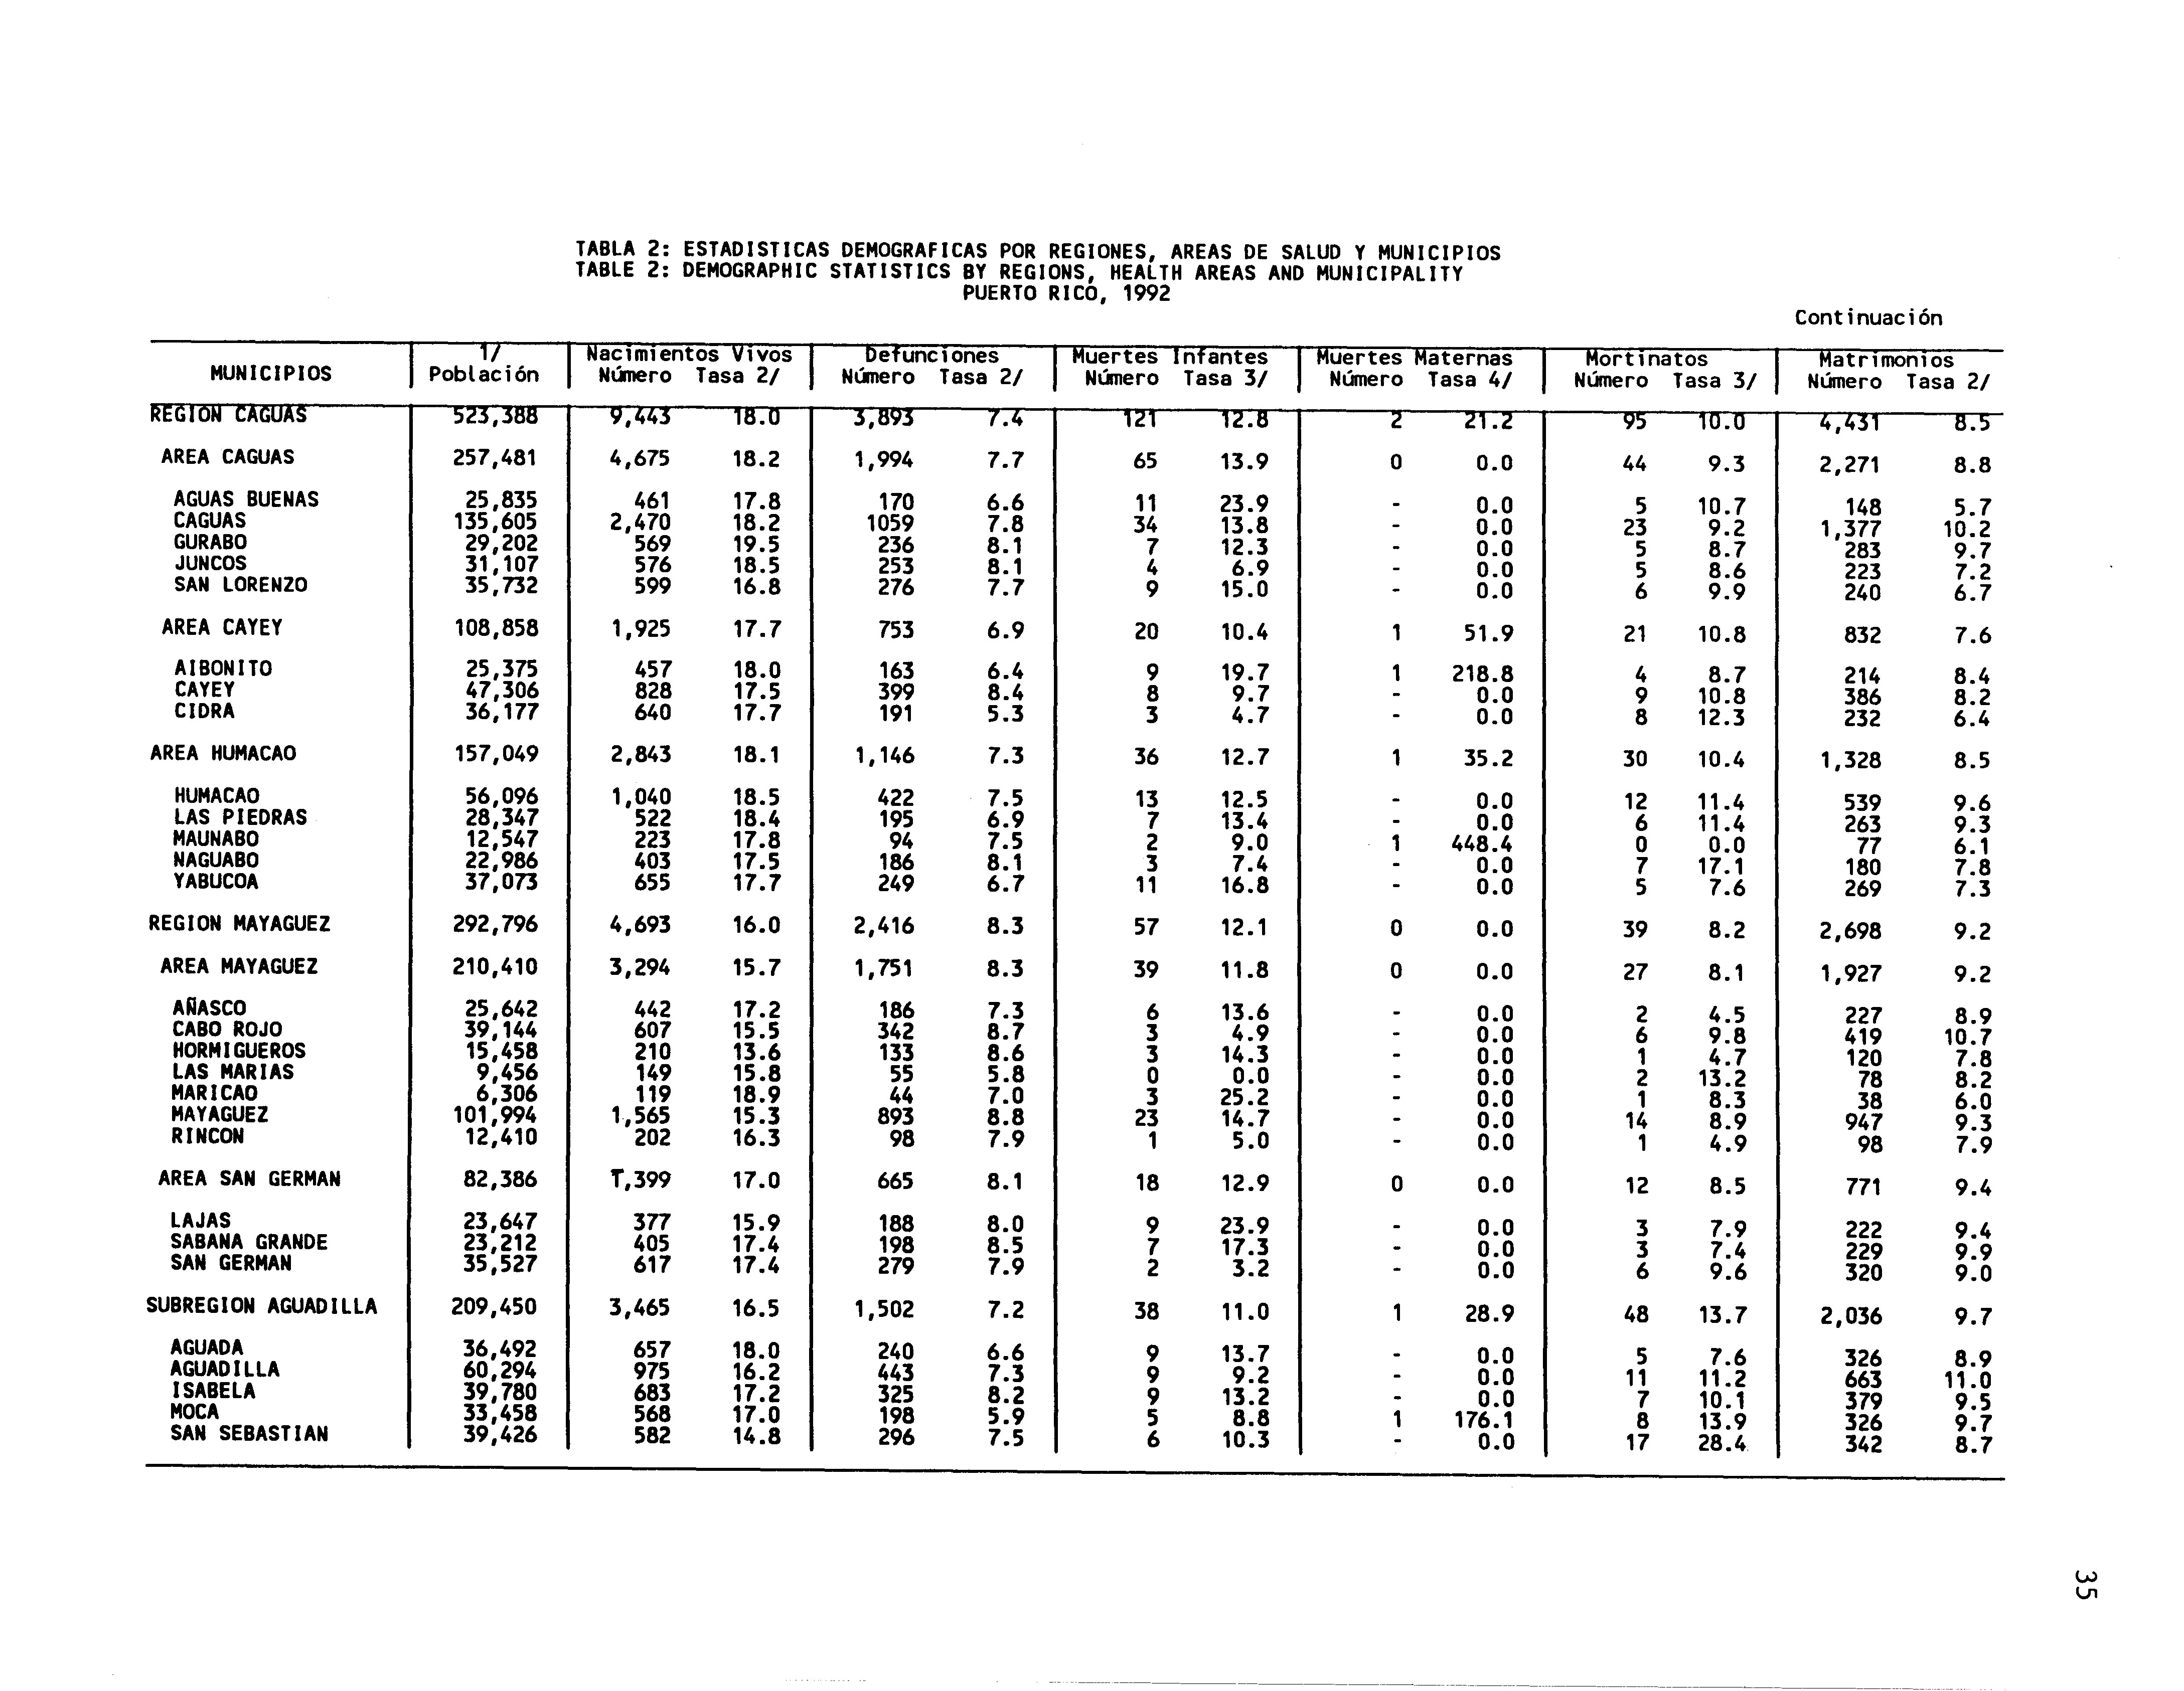 TABLA ESTADISTICAS DEMGRAFICAS PR REGINES AREAS DE SALUD Y MUNICIPIS TABLE DEMGRAPHIC STATISTICS